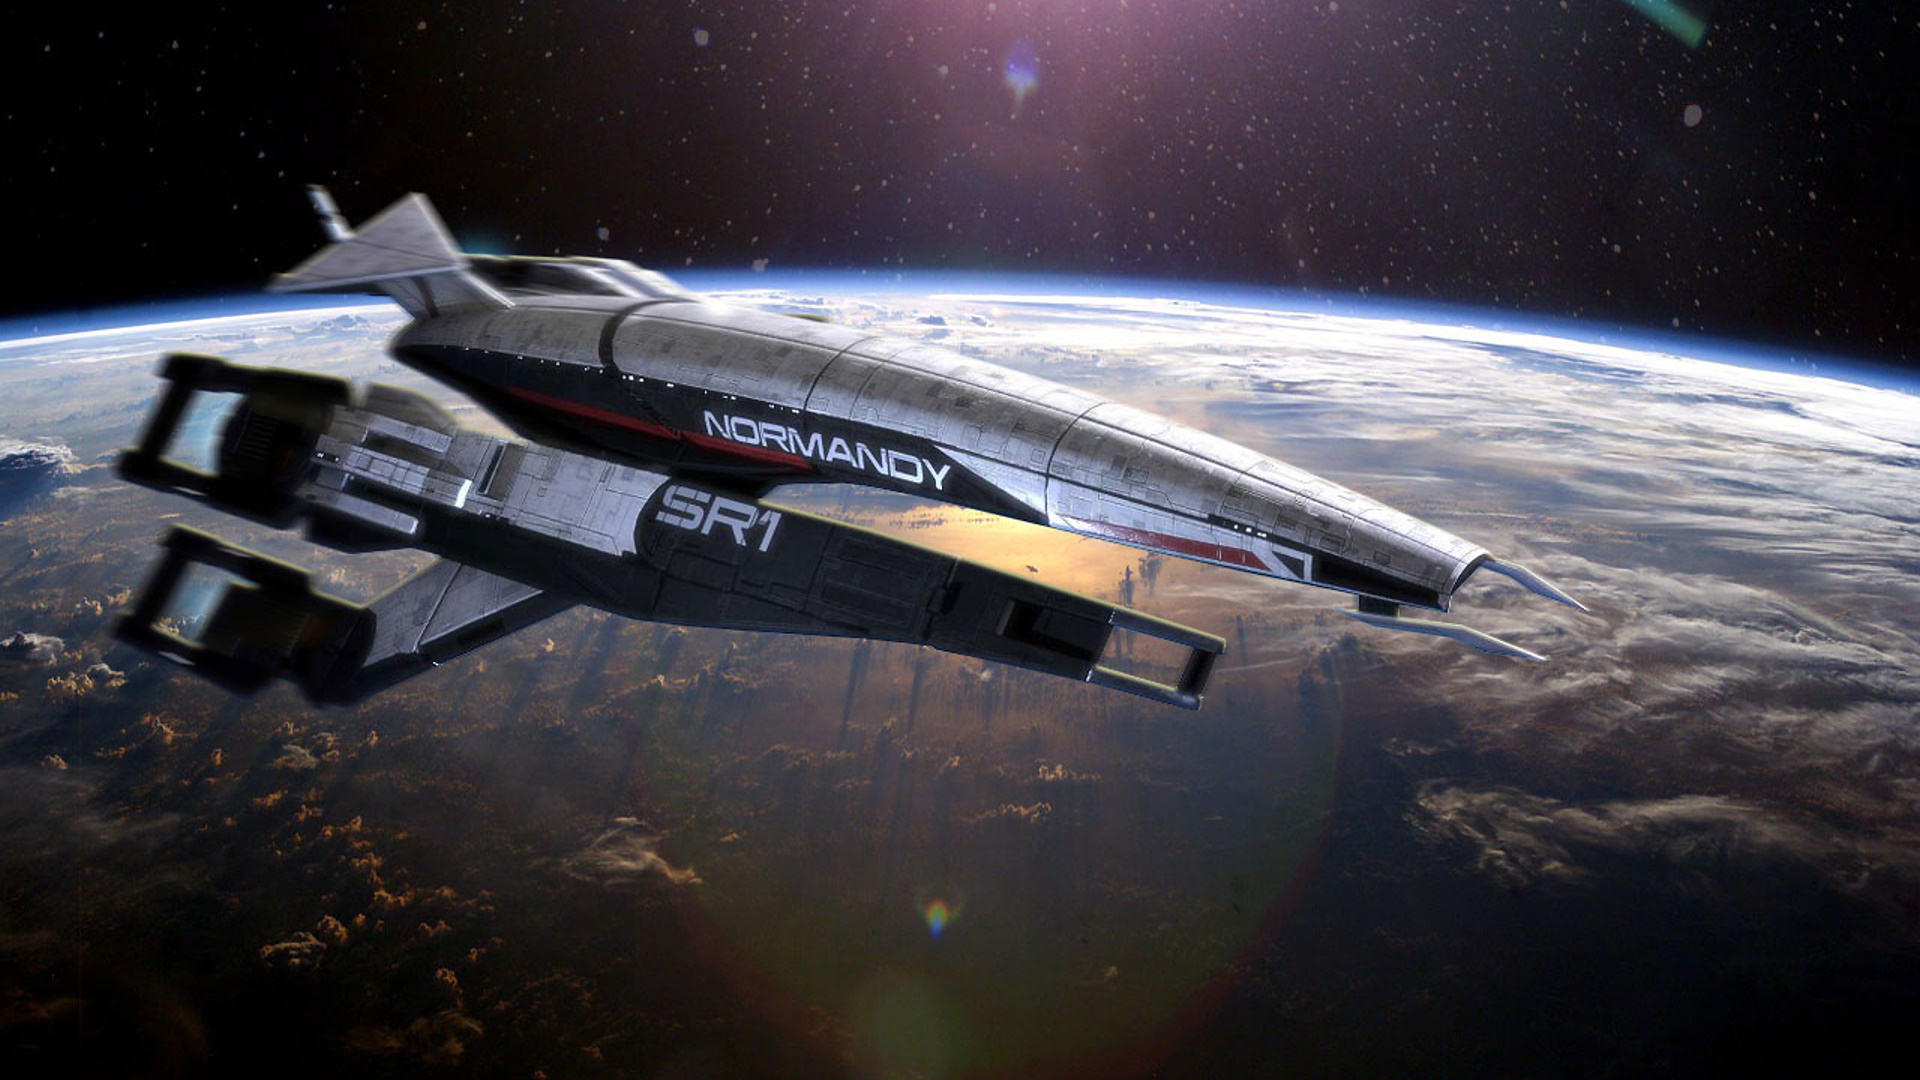 The-New-Space-Opera-from-Iain-M-Banks-to-Paul-McAuley-from-Firefly-to-Battlestar-Galactica-from-wallpaper-wpc5809410